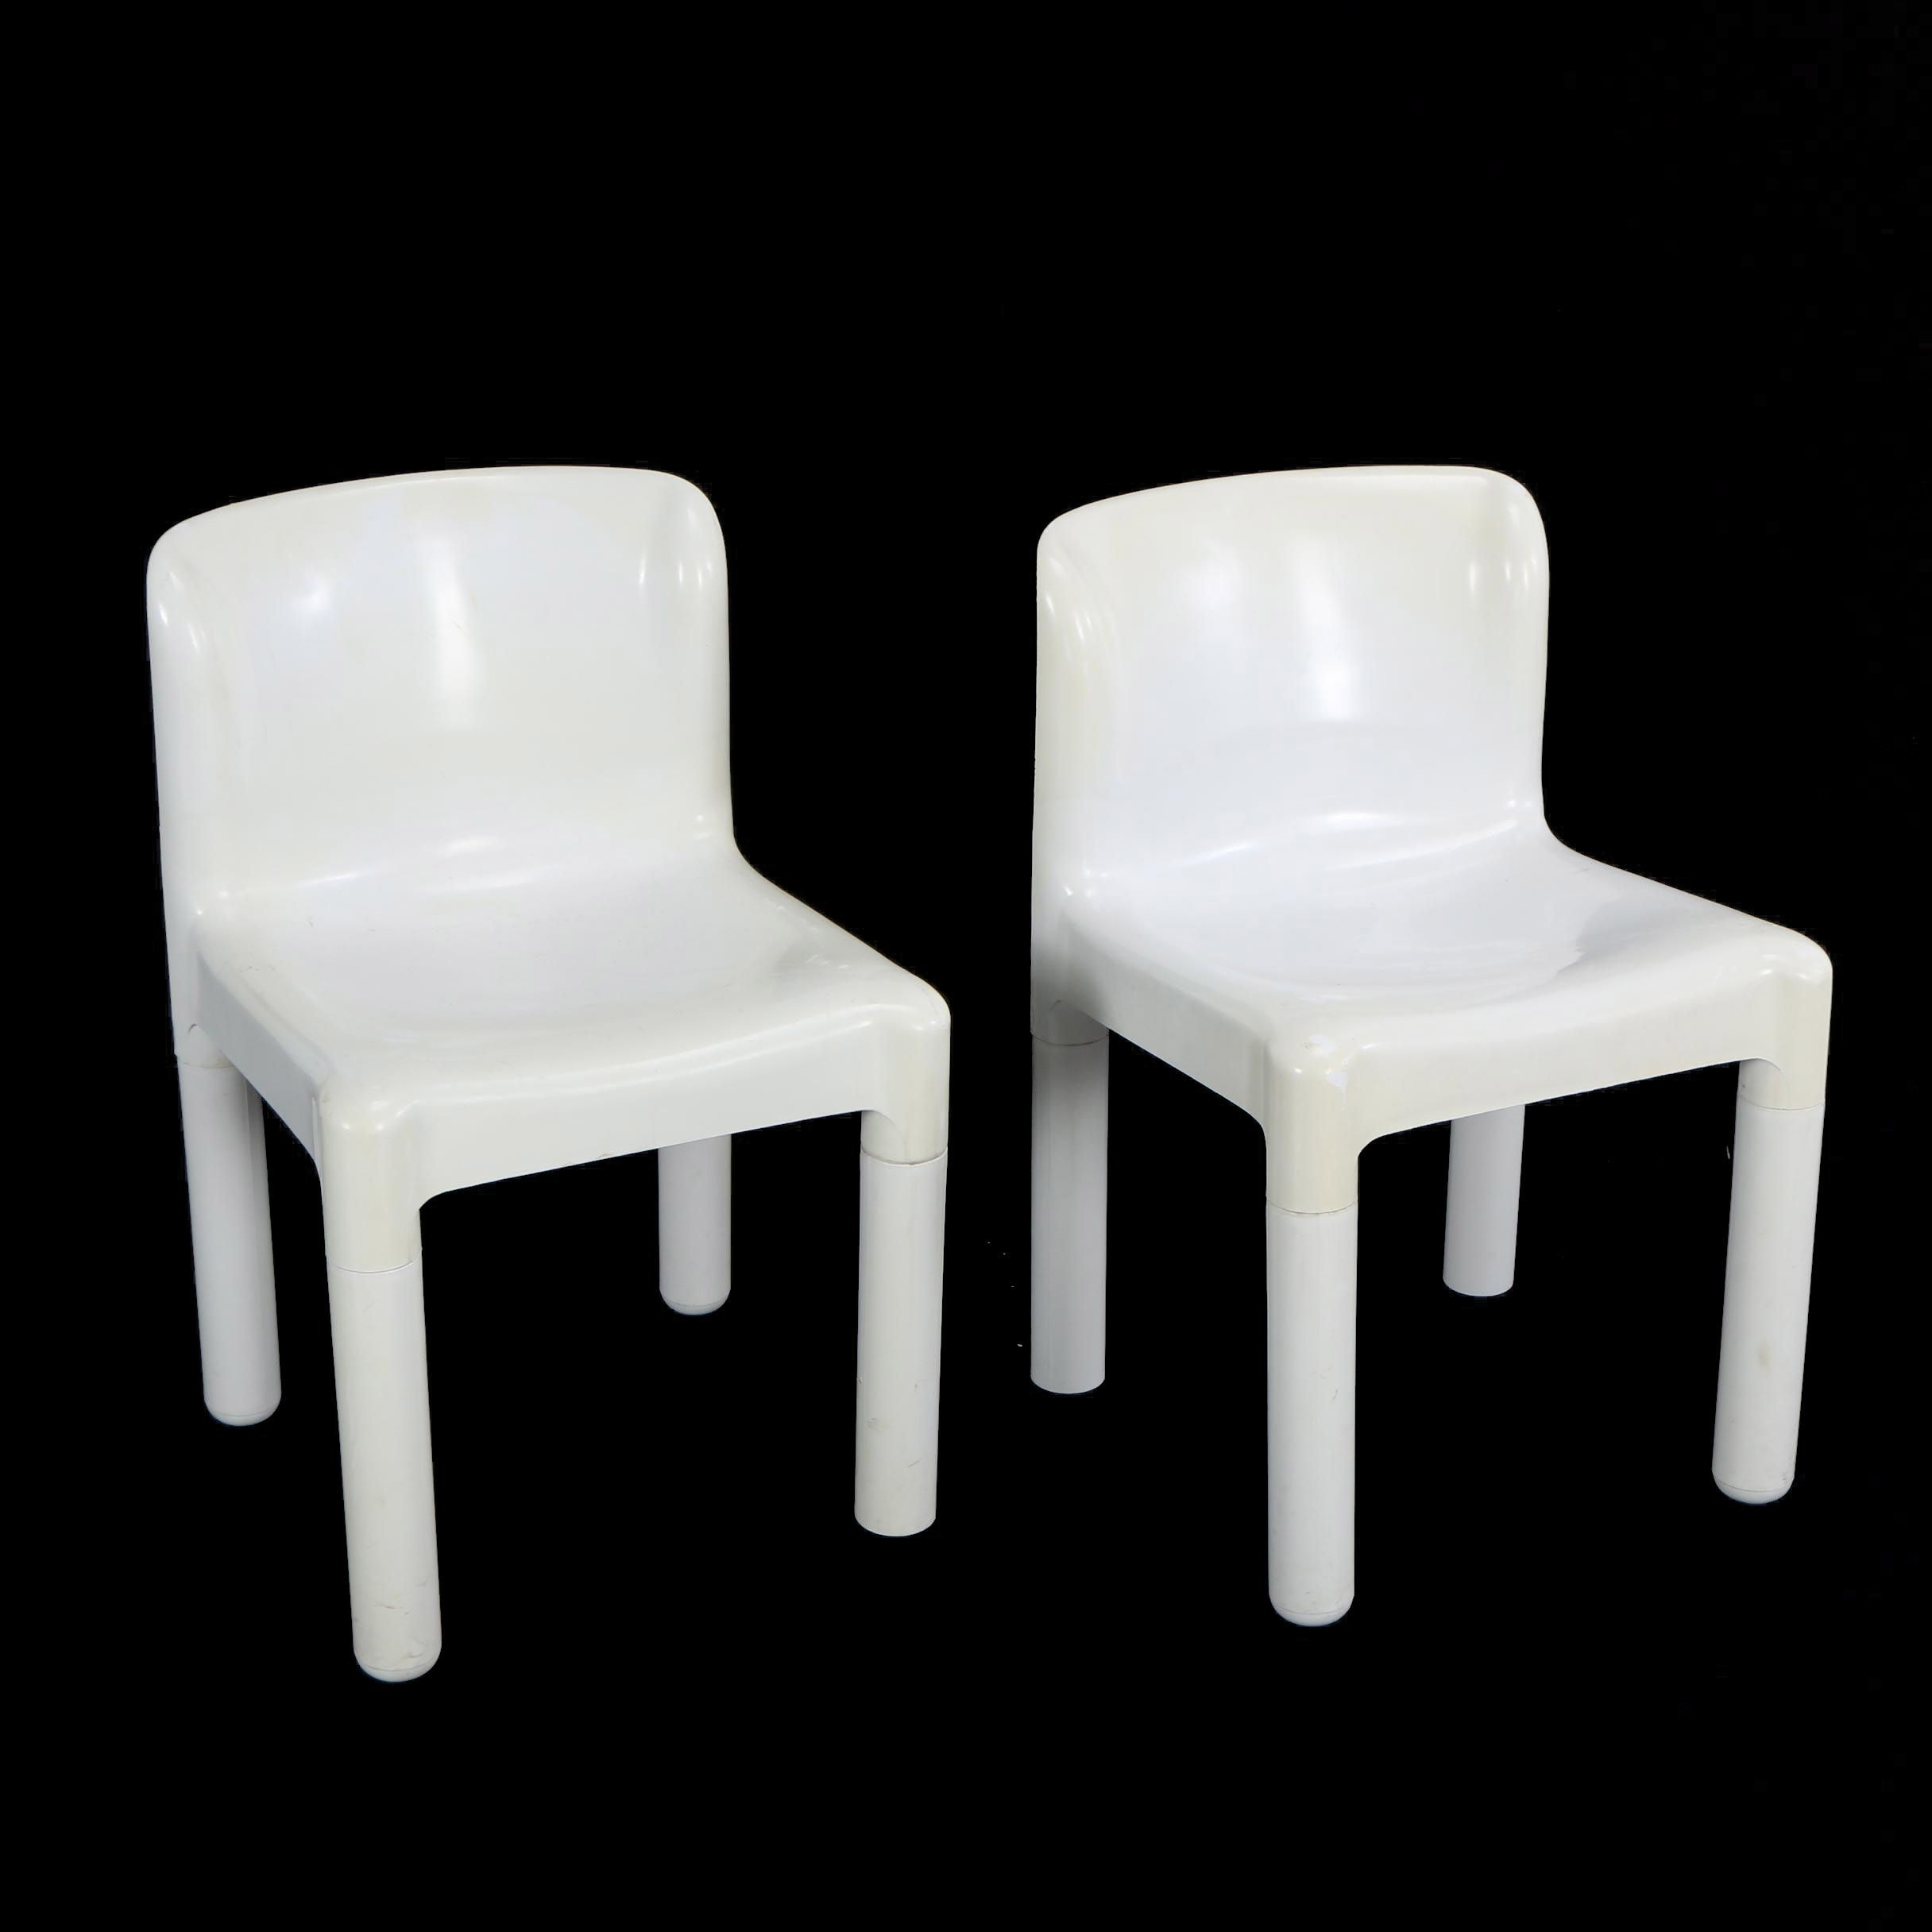 "Kartell ""Model 4875"" Molded Chairs Designed by C. Bartoli"